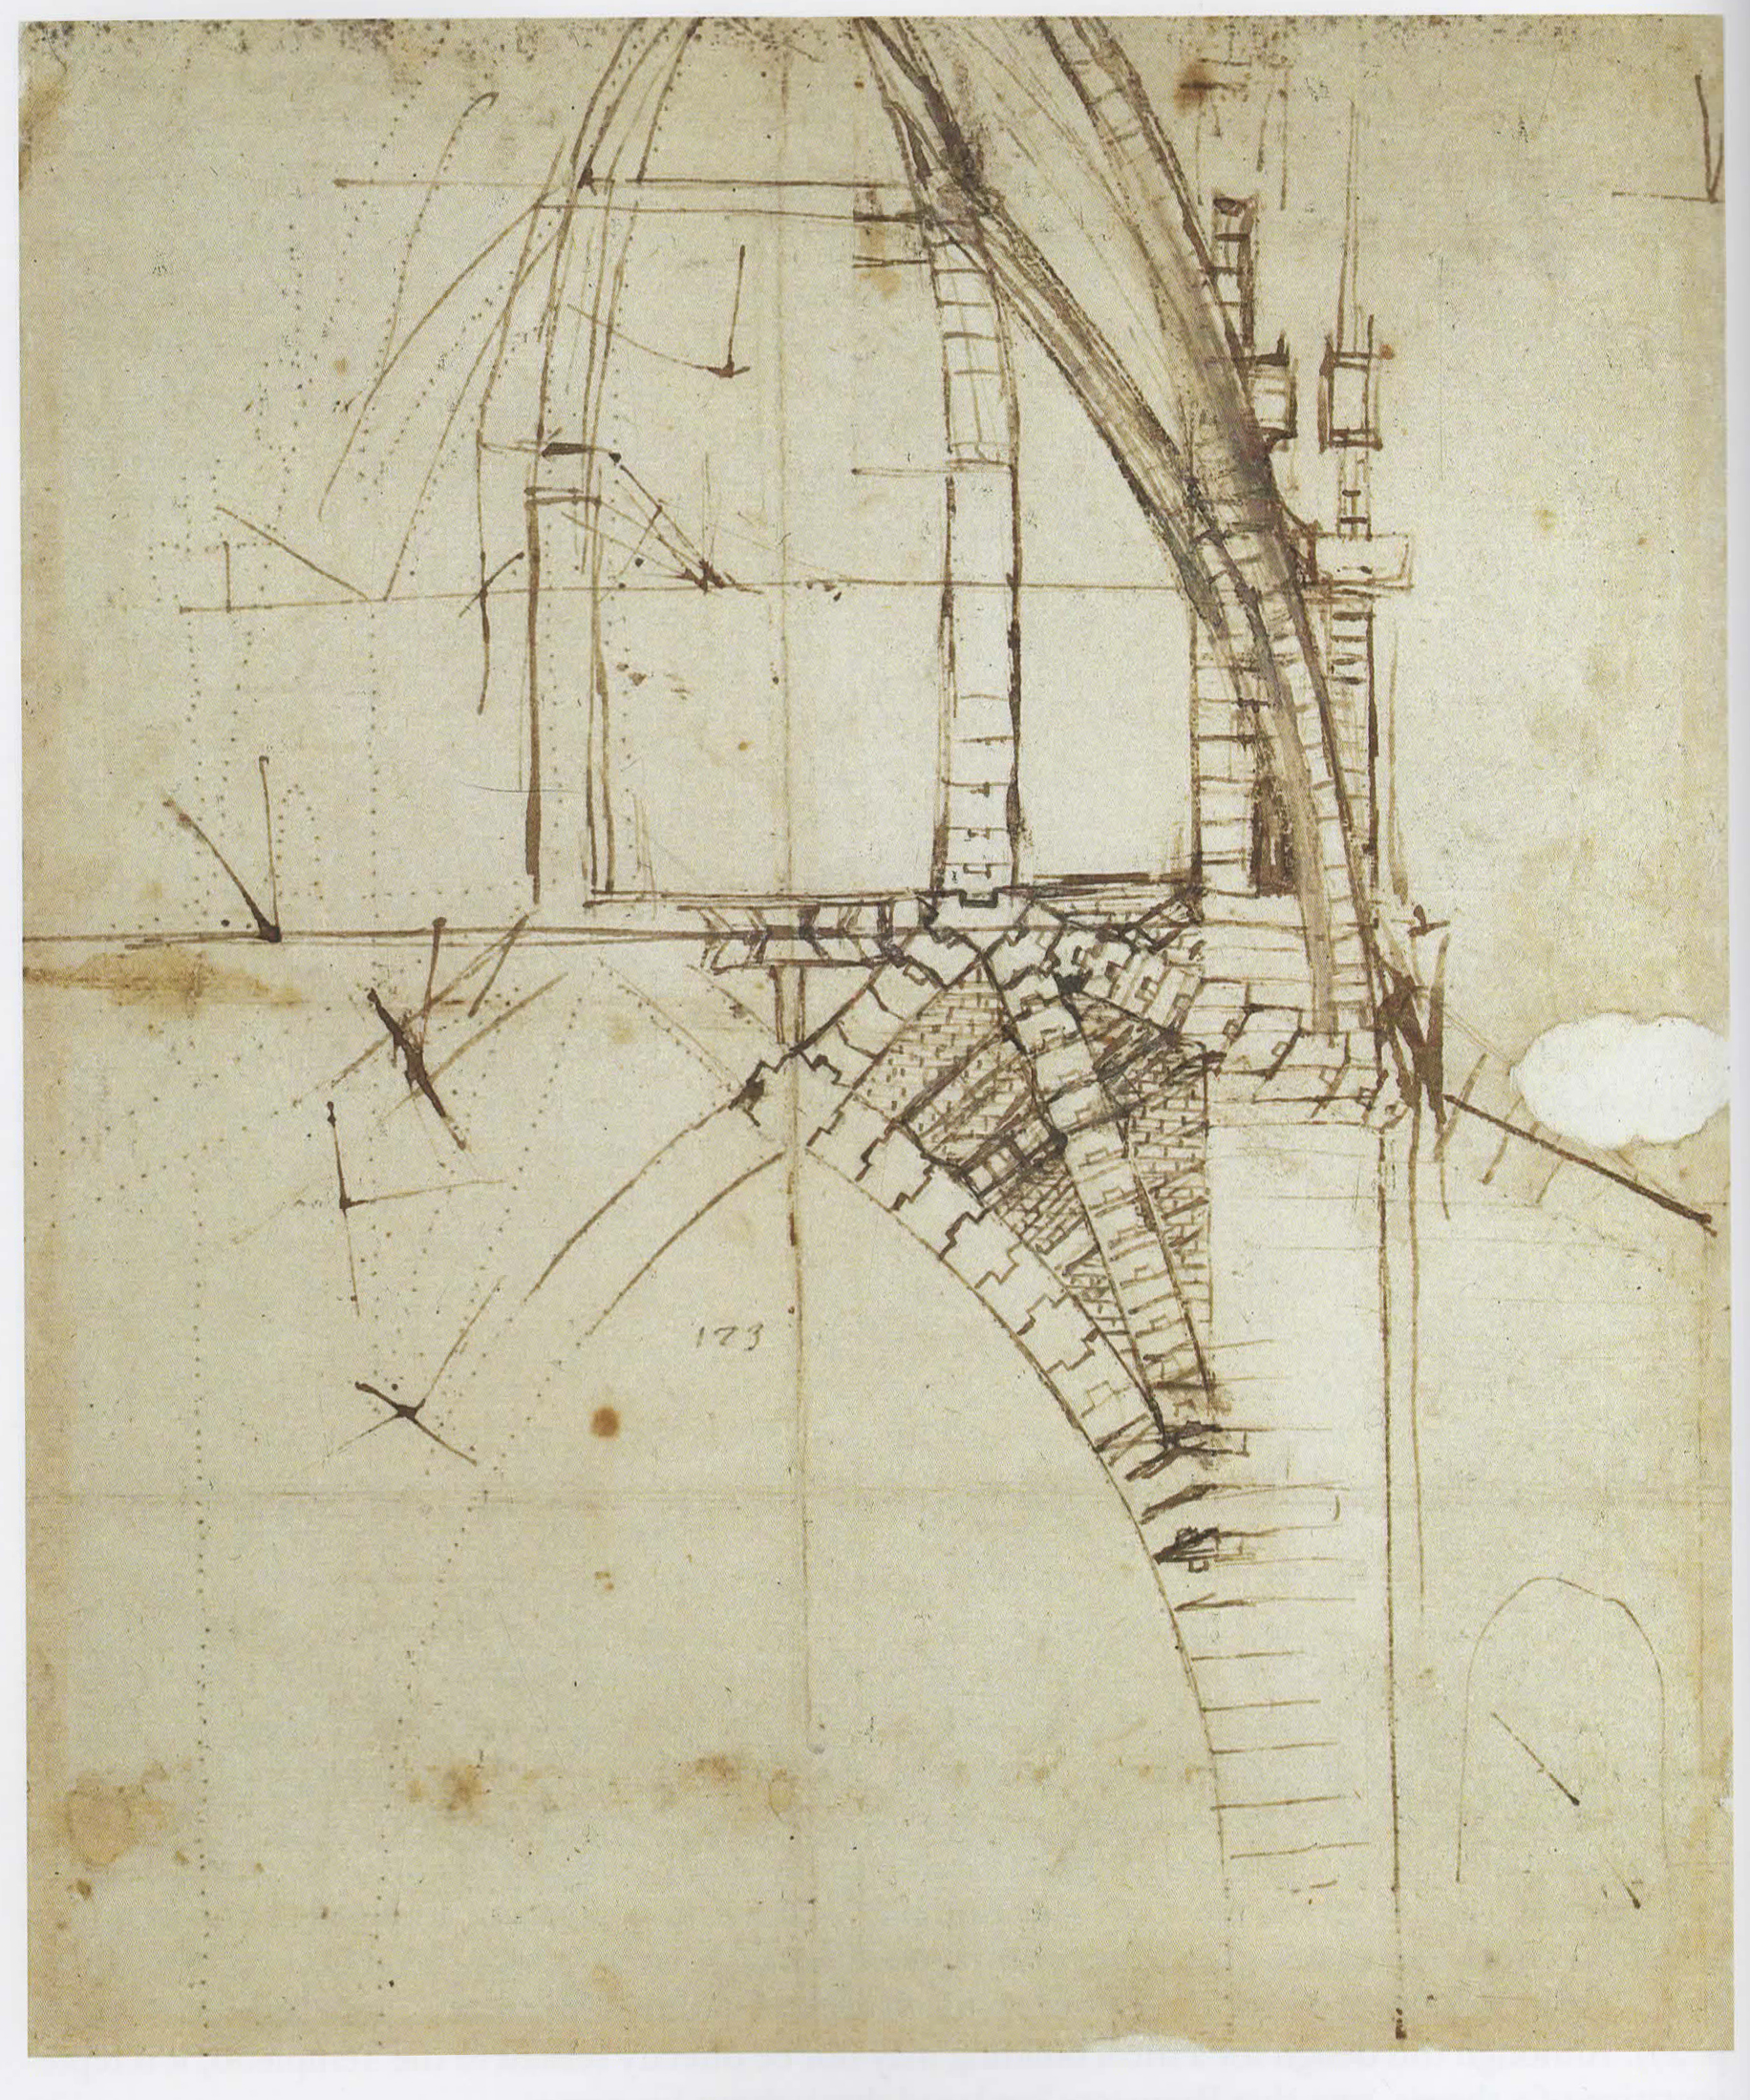 Da Vinci, Leonardo.  Codex Atlanticus, studies for the tiburio of Milan Cathedral. c. 1487 . Drawing. Biblioteca Ambrosiana, Milan, Italy.   Architects' Drawings: A Selection of Sketches by World Famous Architects Through History . Amsterdam: Elsevier/Architectural, 2005. 26. Print.